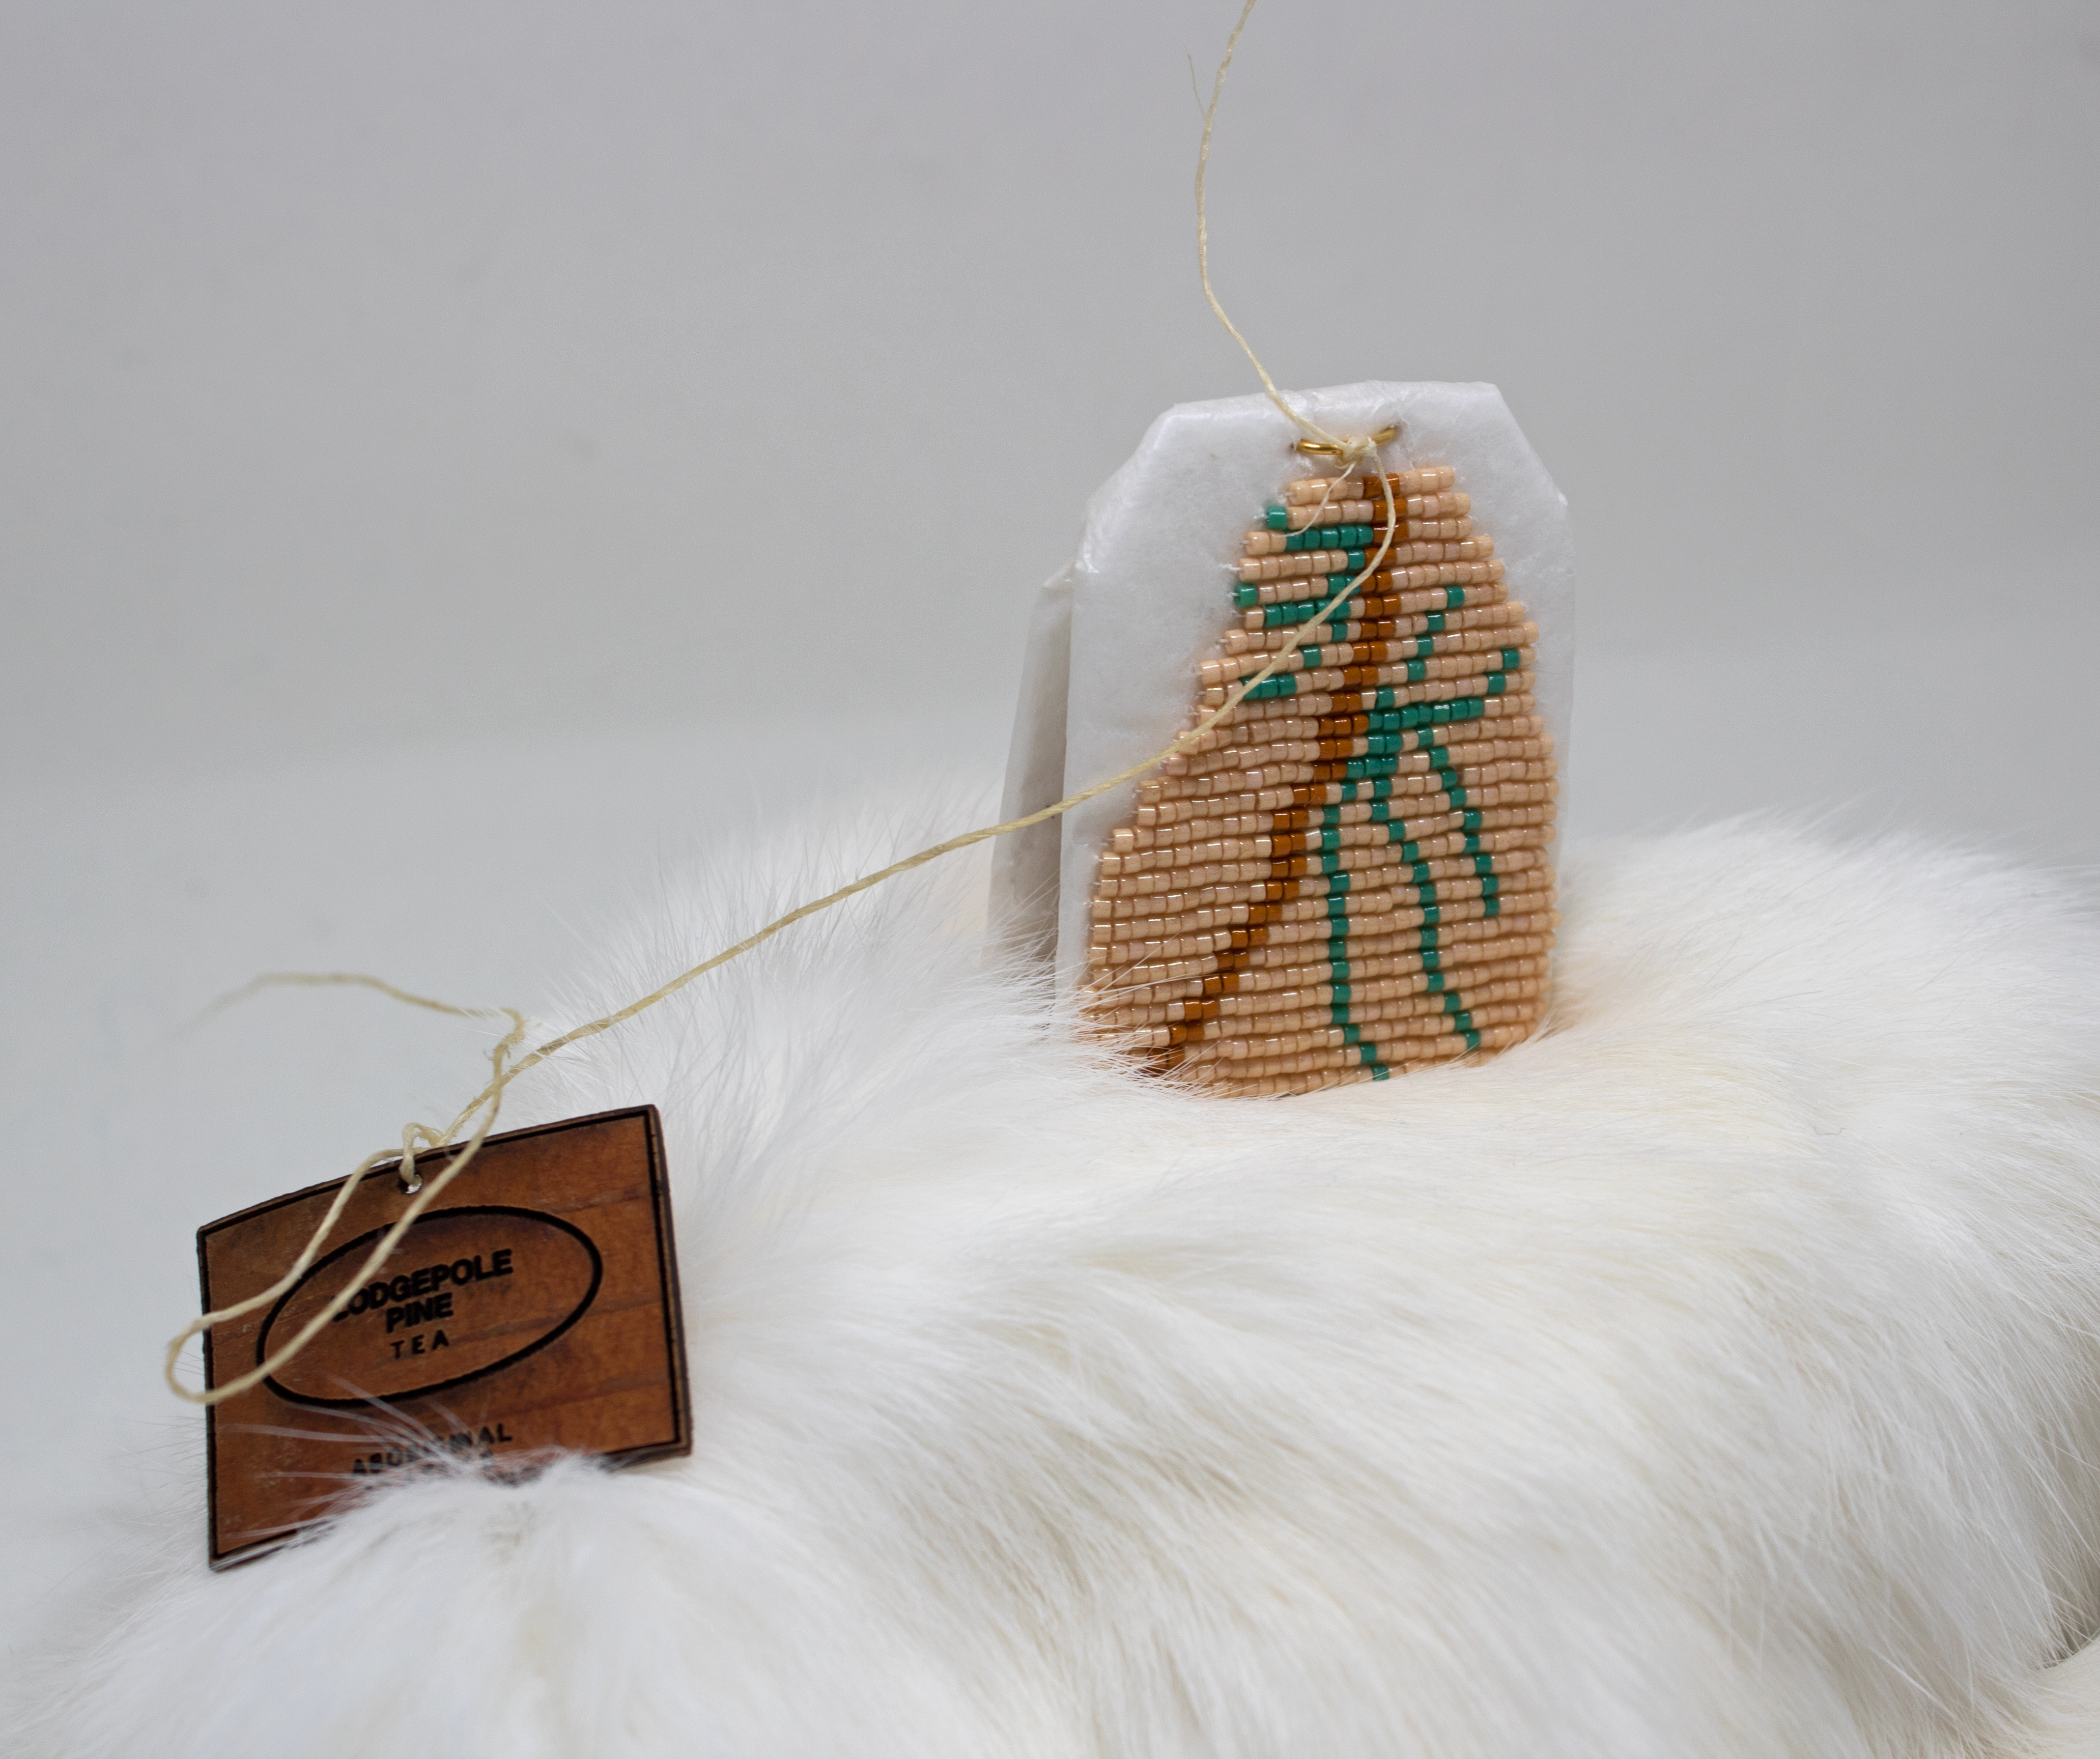 Art by Catherine Blackburn - a tea bag encrusted with beige, green and red beads on a fur blanket